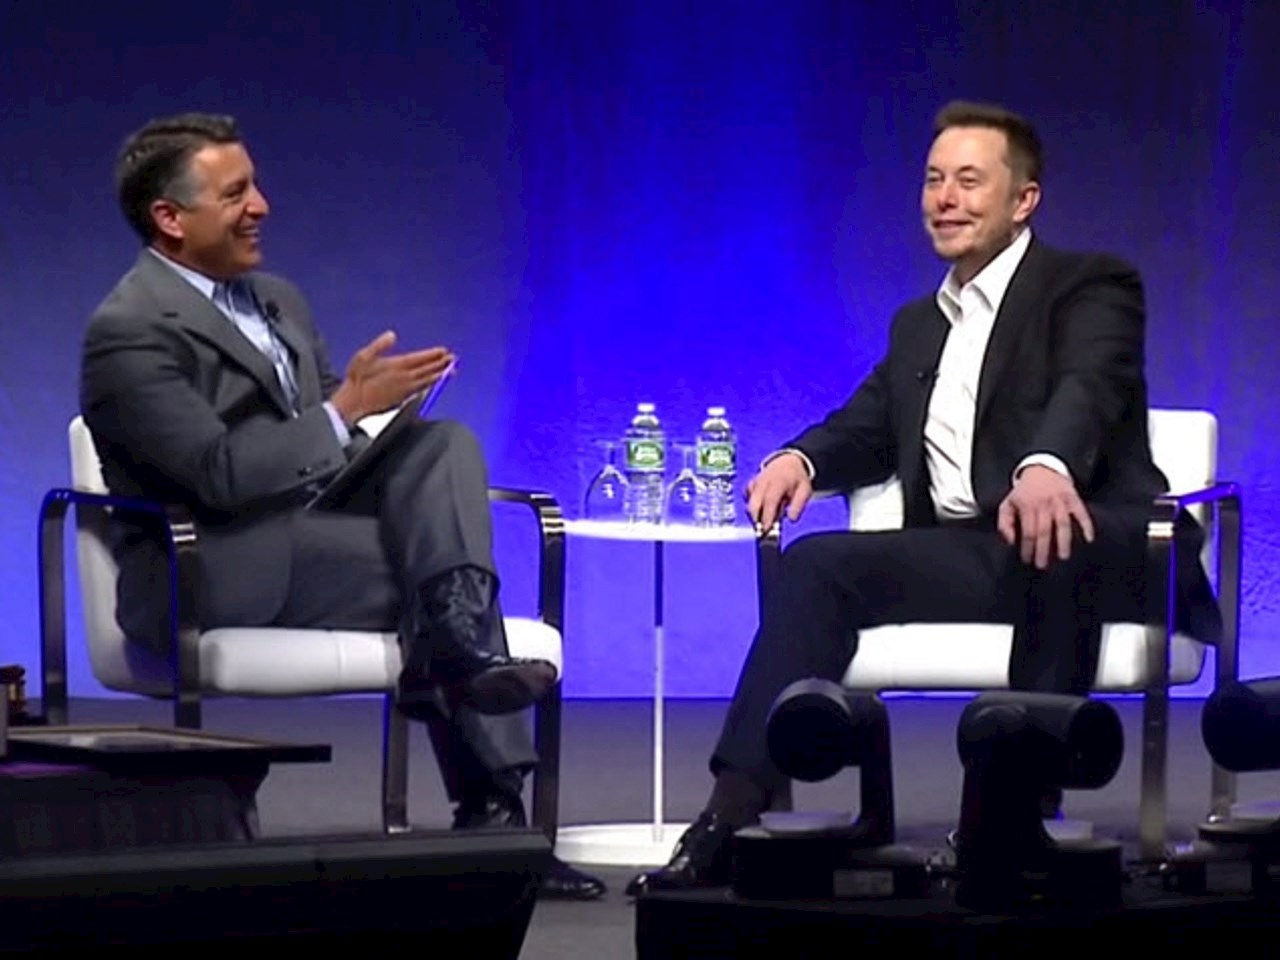 Nevada's Governor Brian Sandoval and Elon Musk